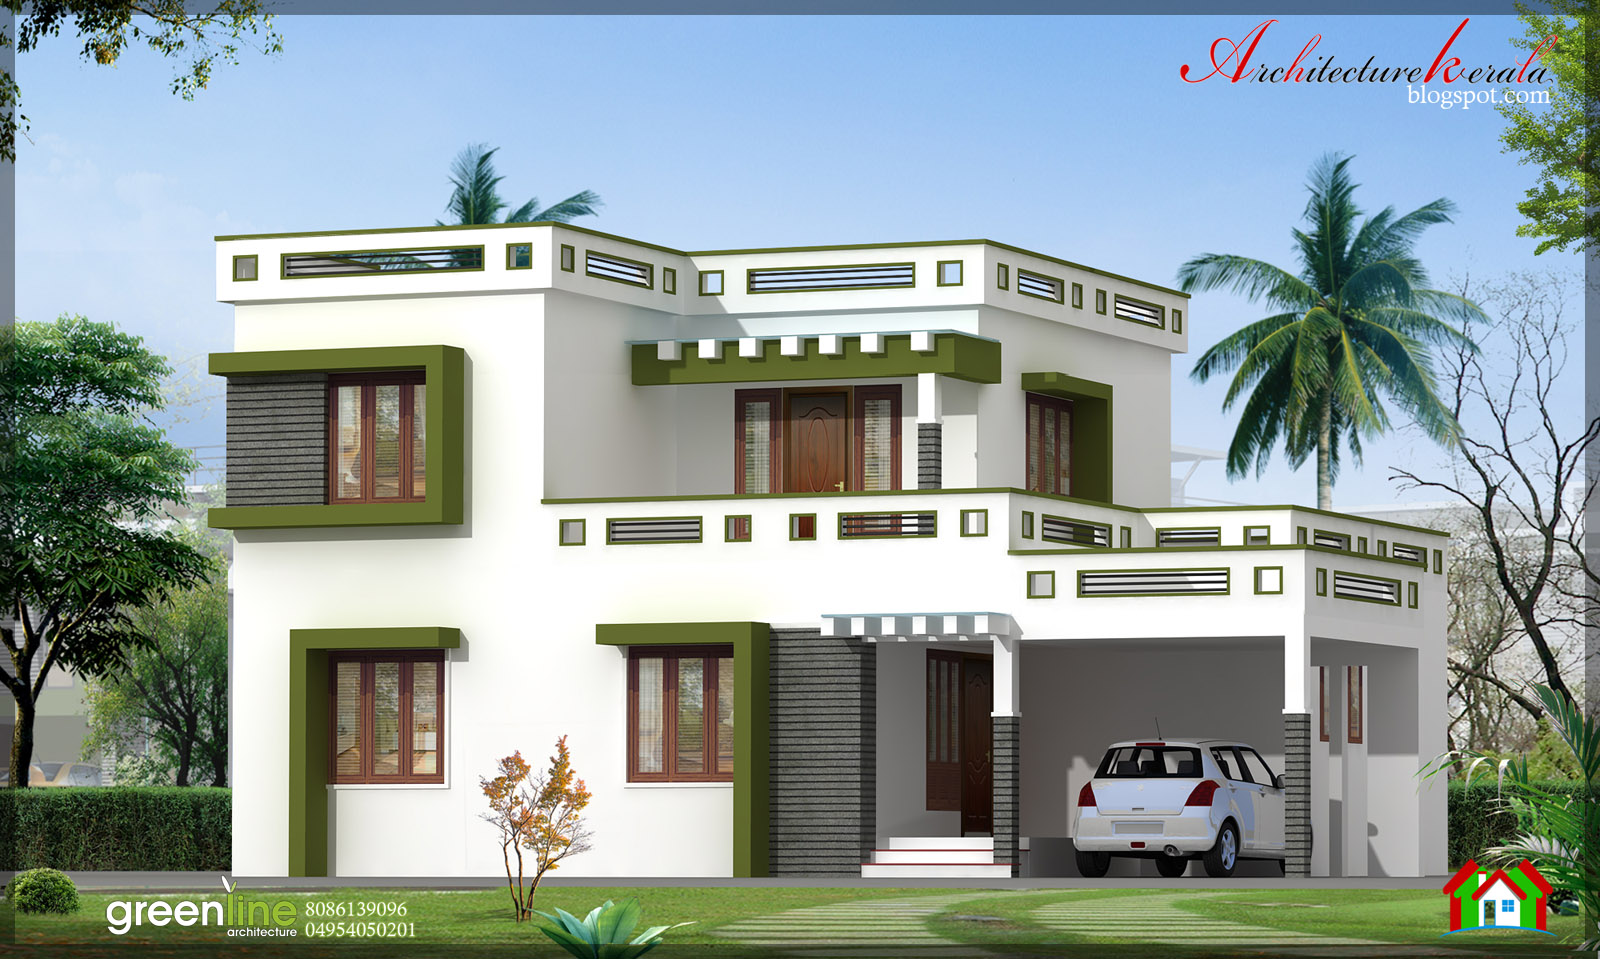 Charmant 3 BHK NEW MODERN STYLE KERALA HOME DESIGN IN 1700 SQ FT